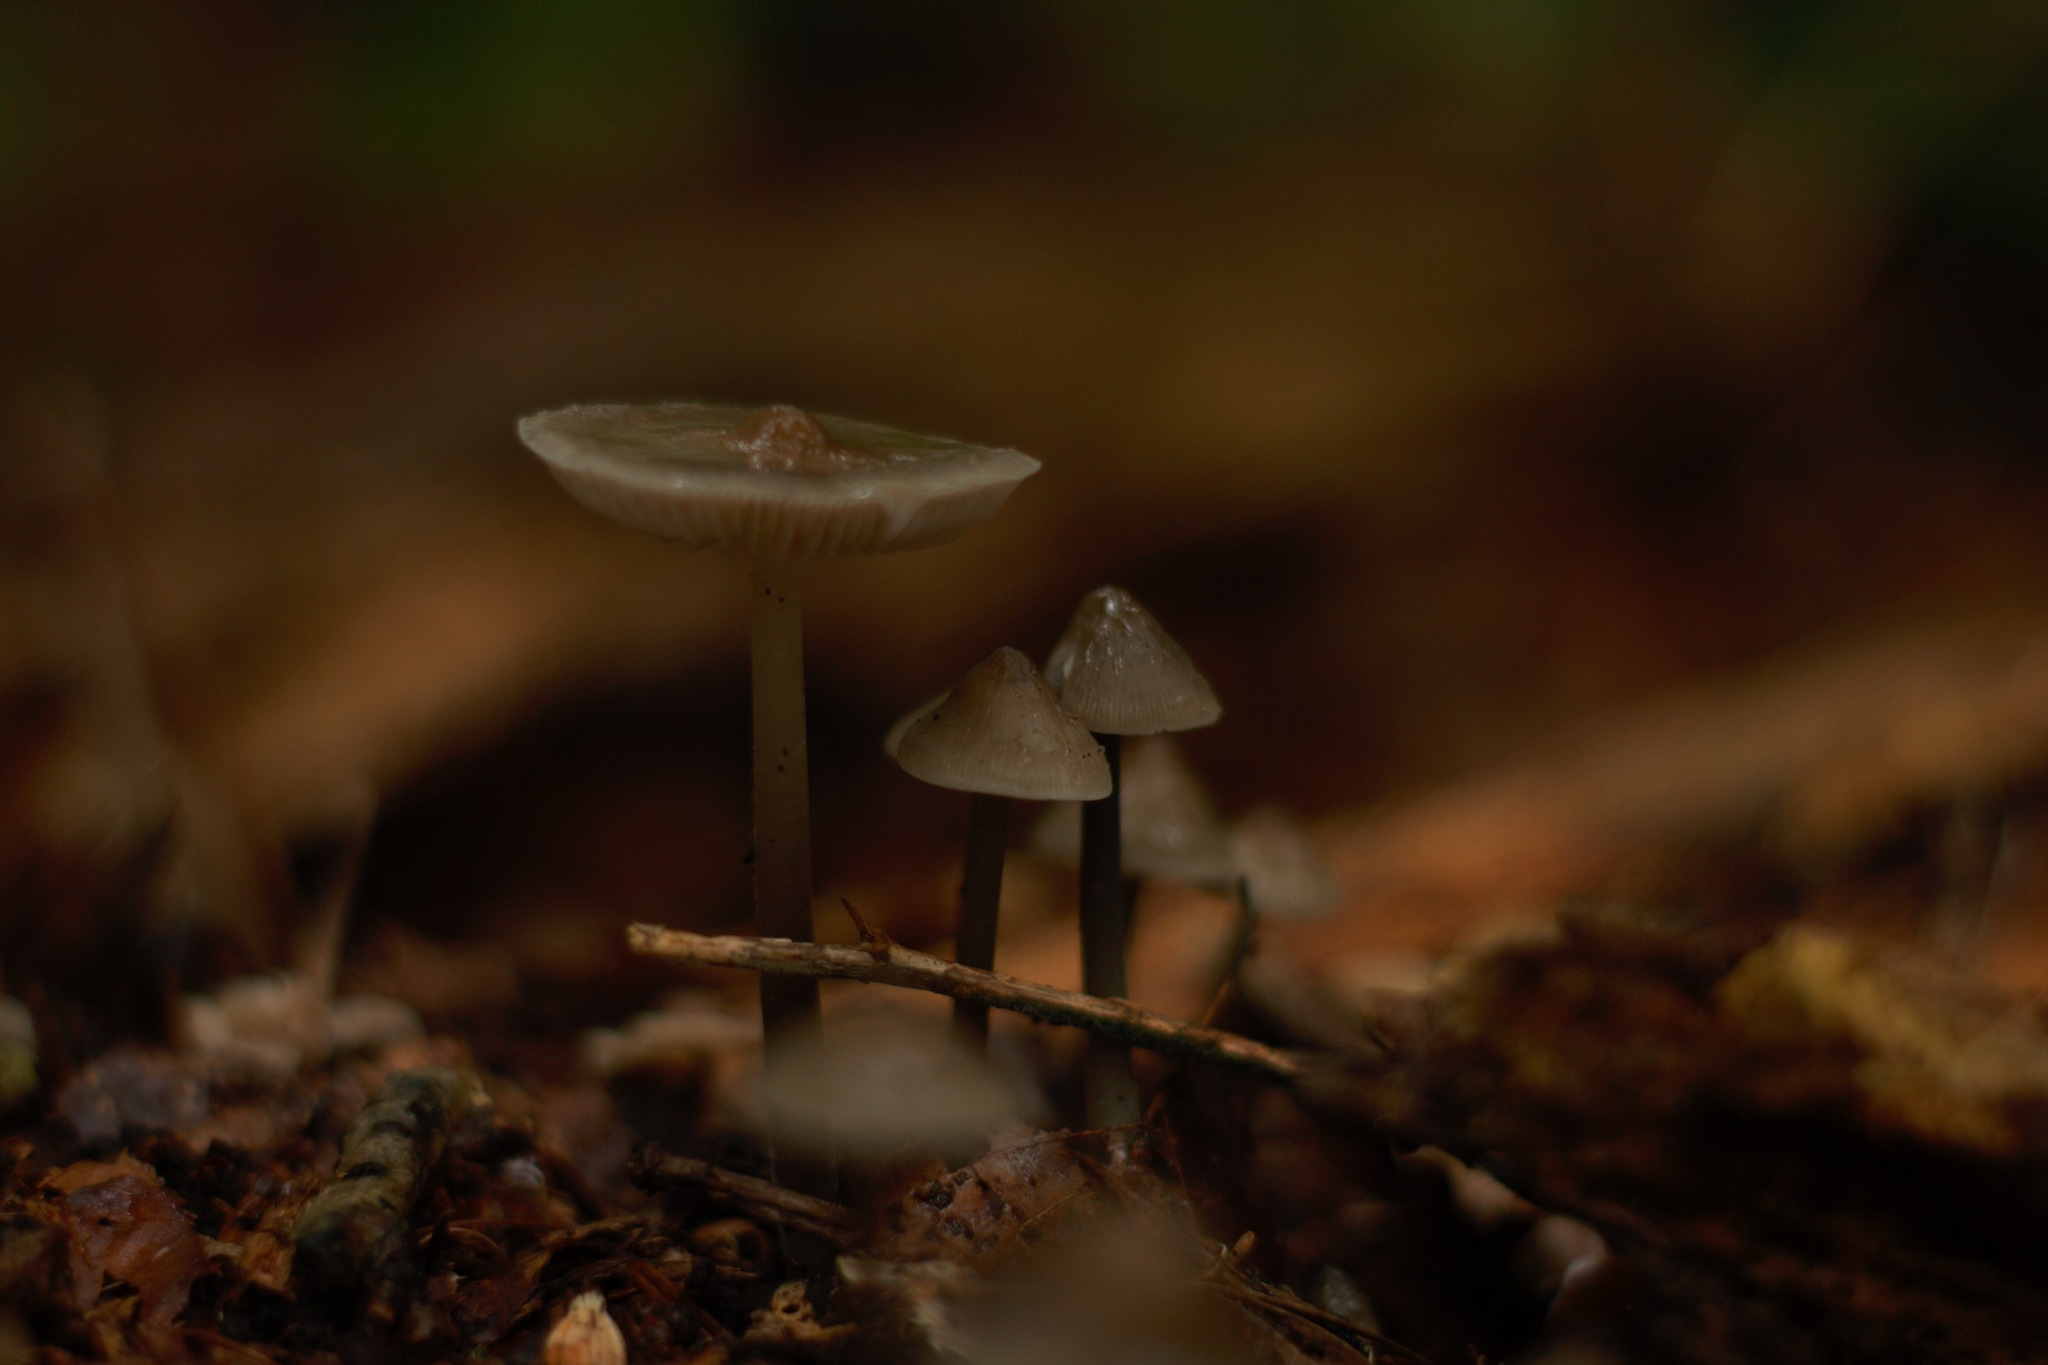 Forest Mushroom by StudioAnjaPhotography